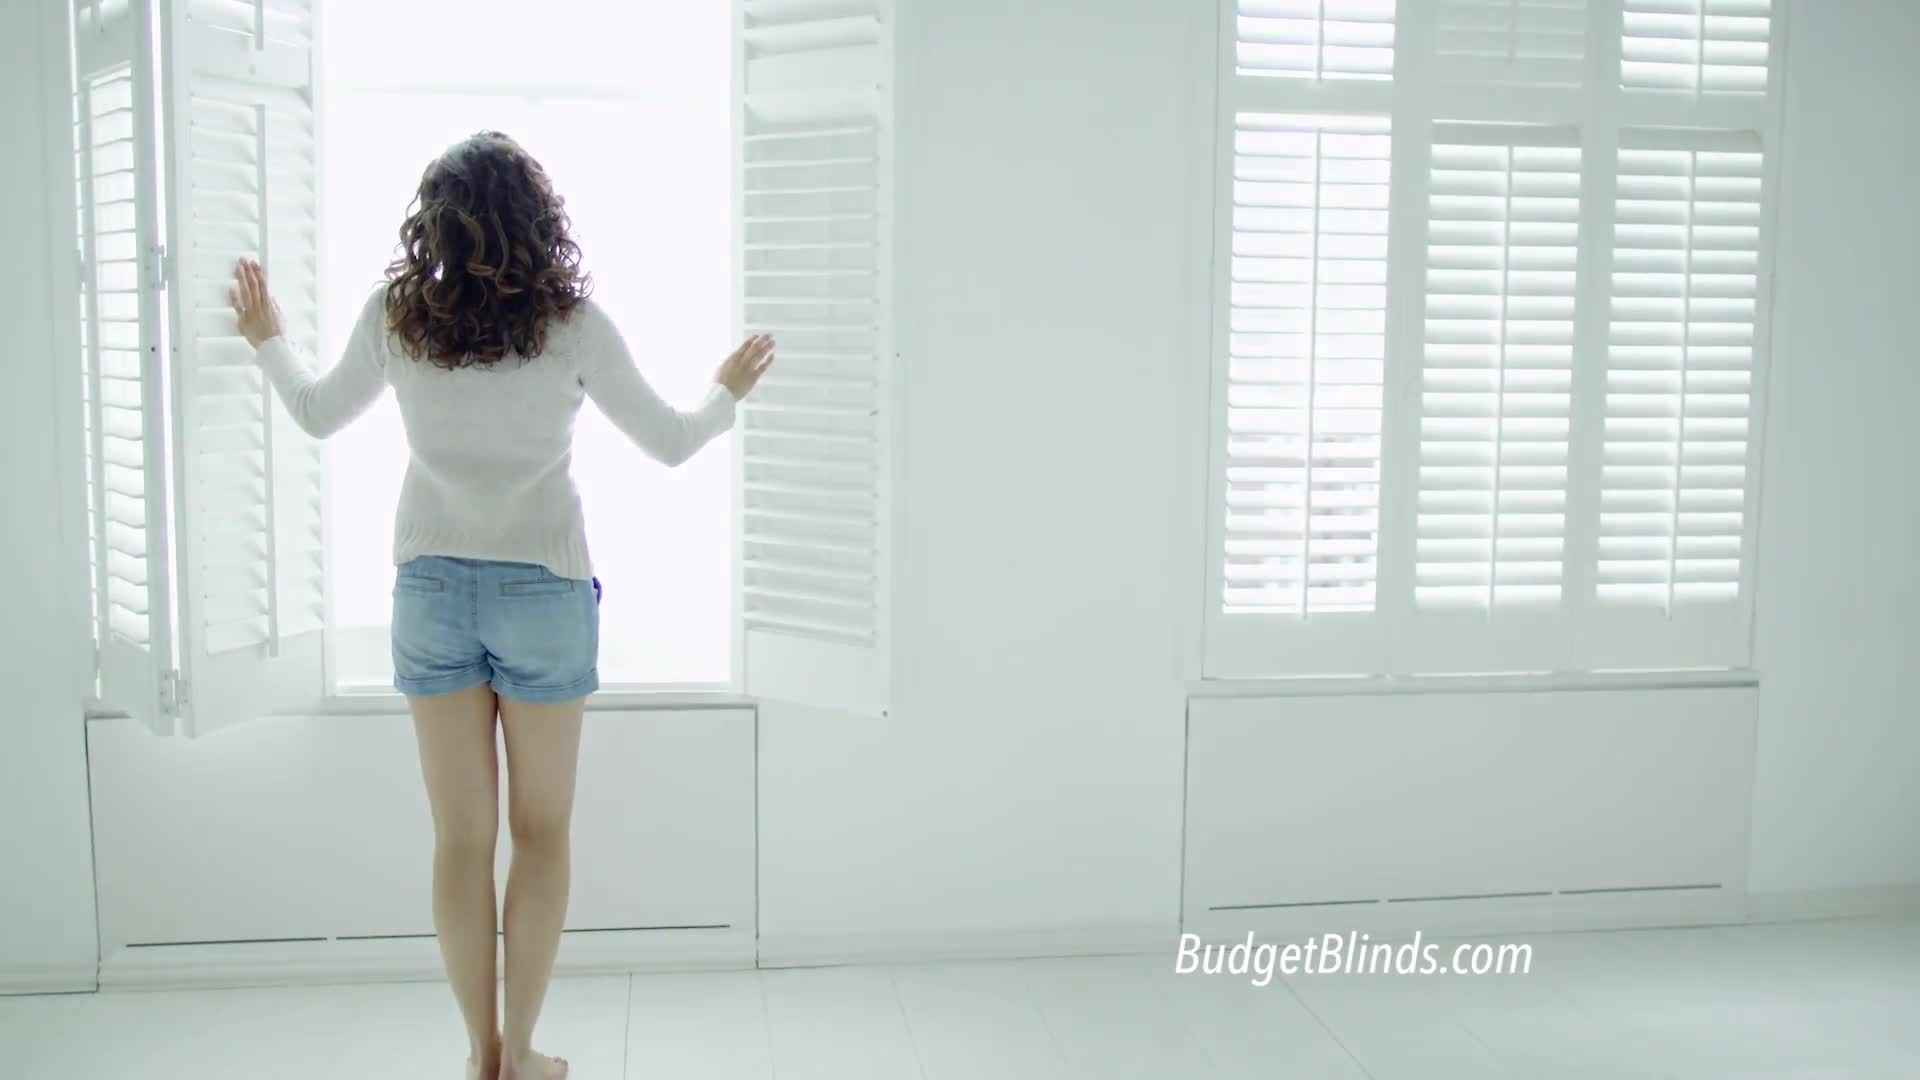 Budget Blinds - Window Shade & Blind Stores - 587-801-3301